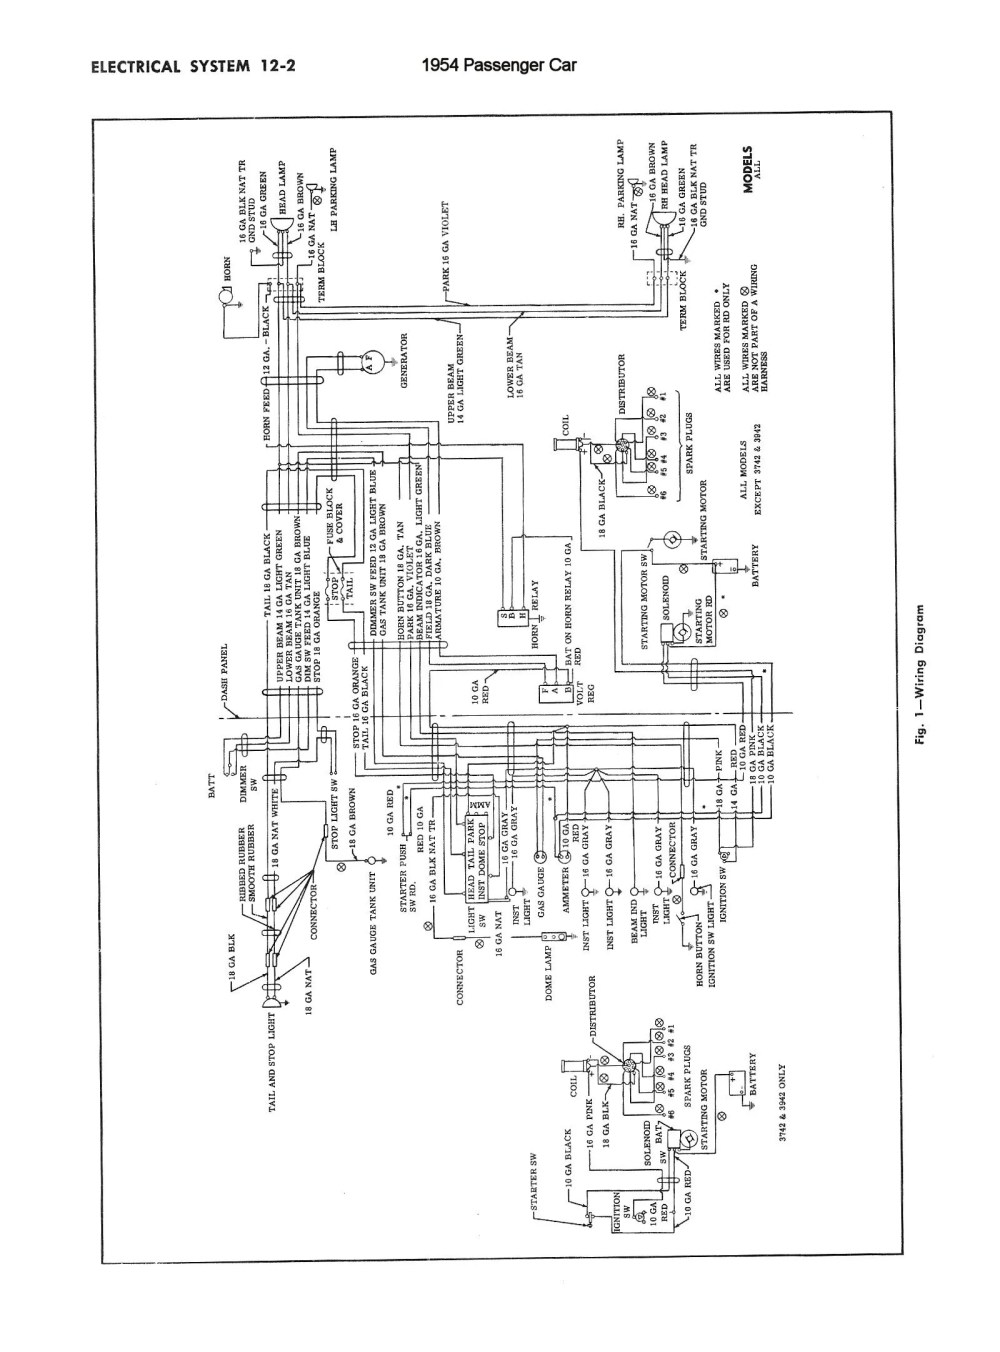 medium resolution of chevy wiring diagrams 1966 ford truck instrument diagram 1954 truck wiring 1954 passenger car wiring